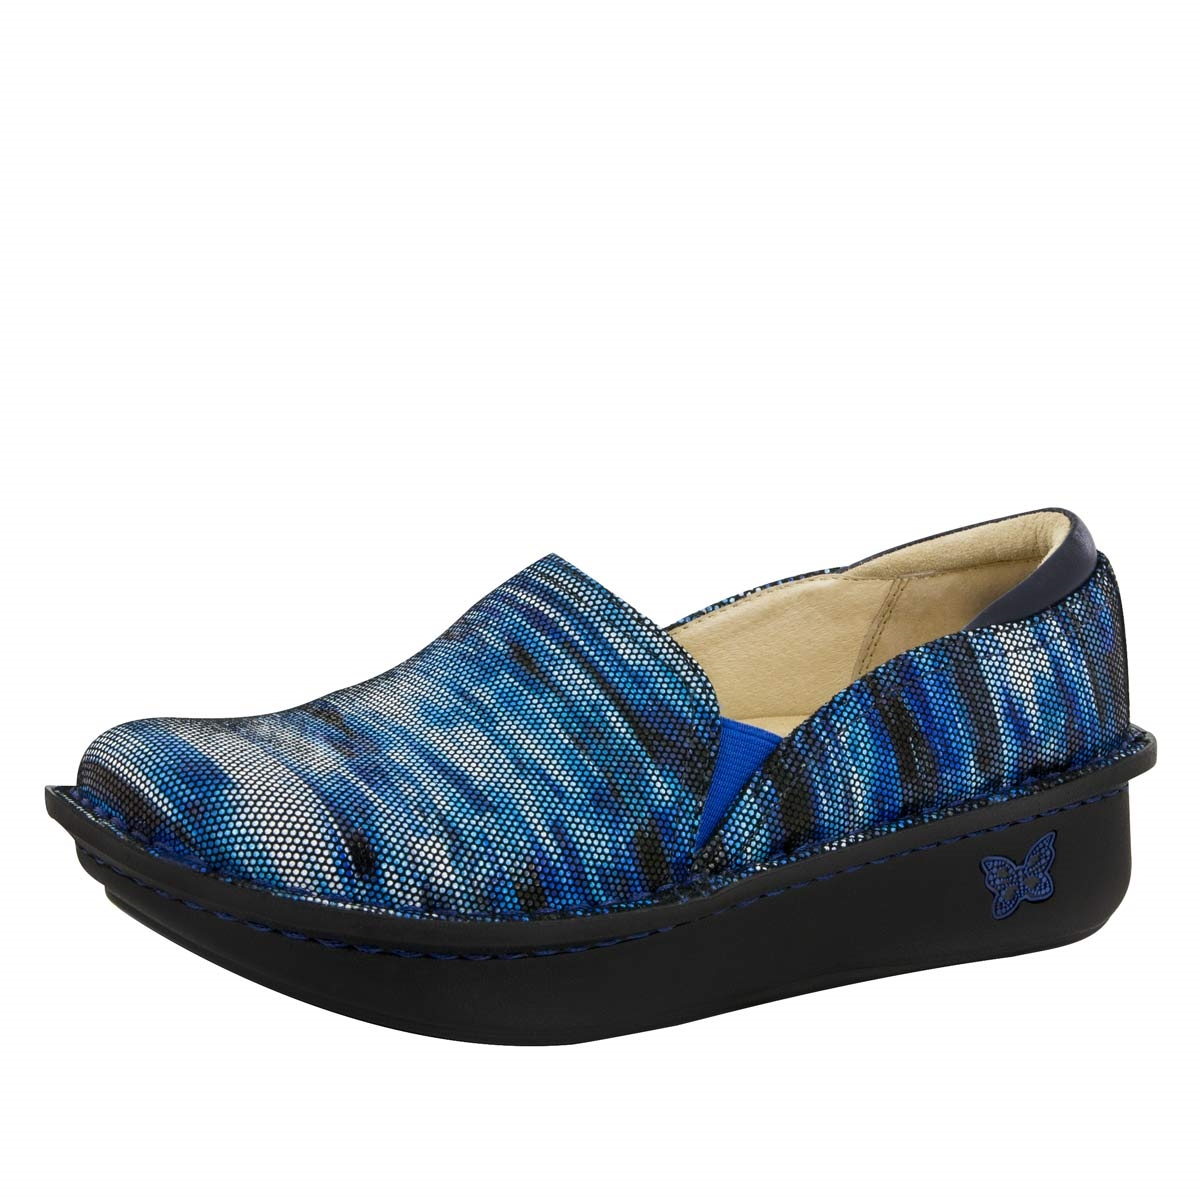 Madi Home Alegria Debra Wavy Navy | Nursing Shoes